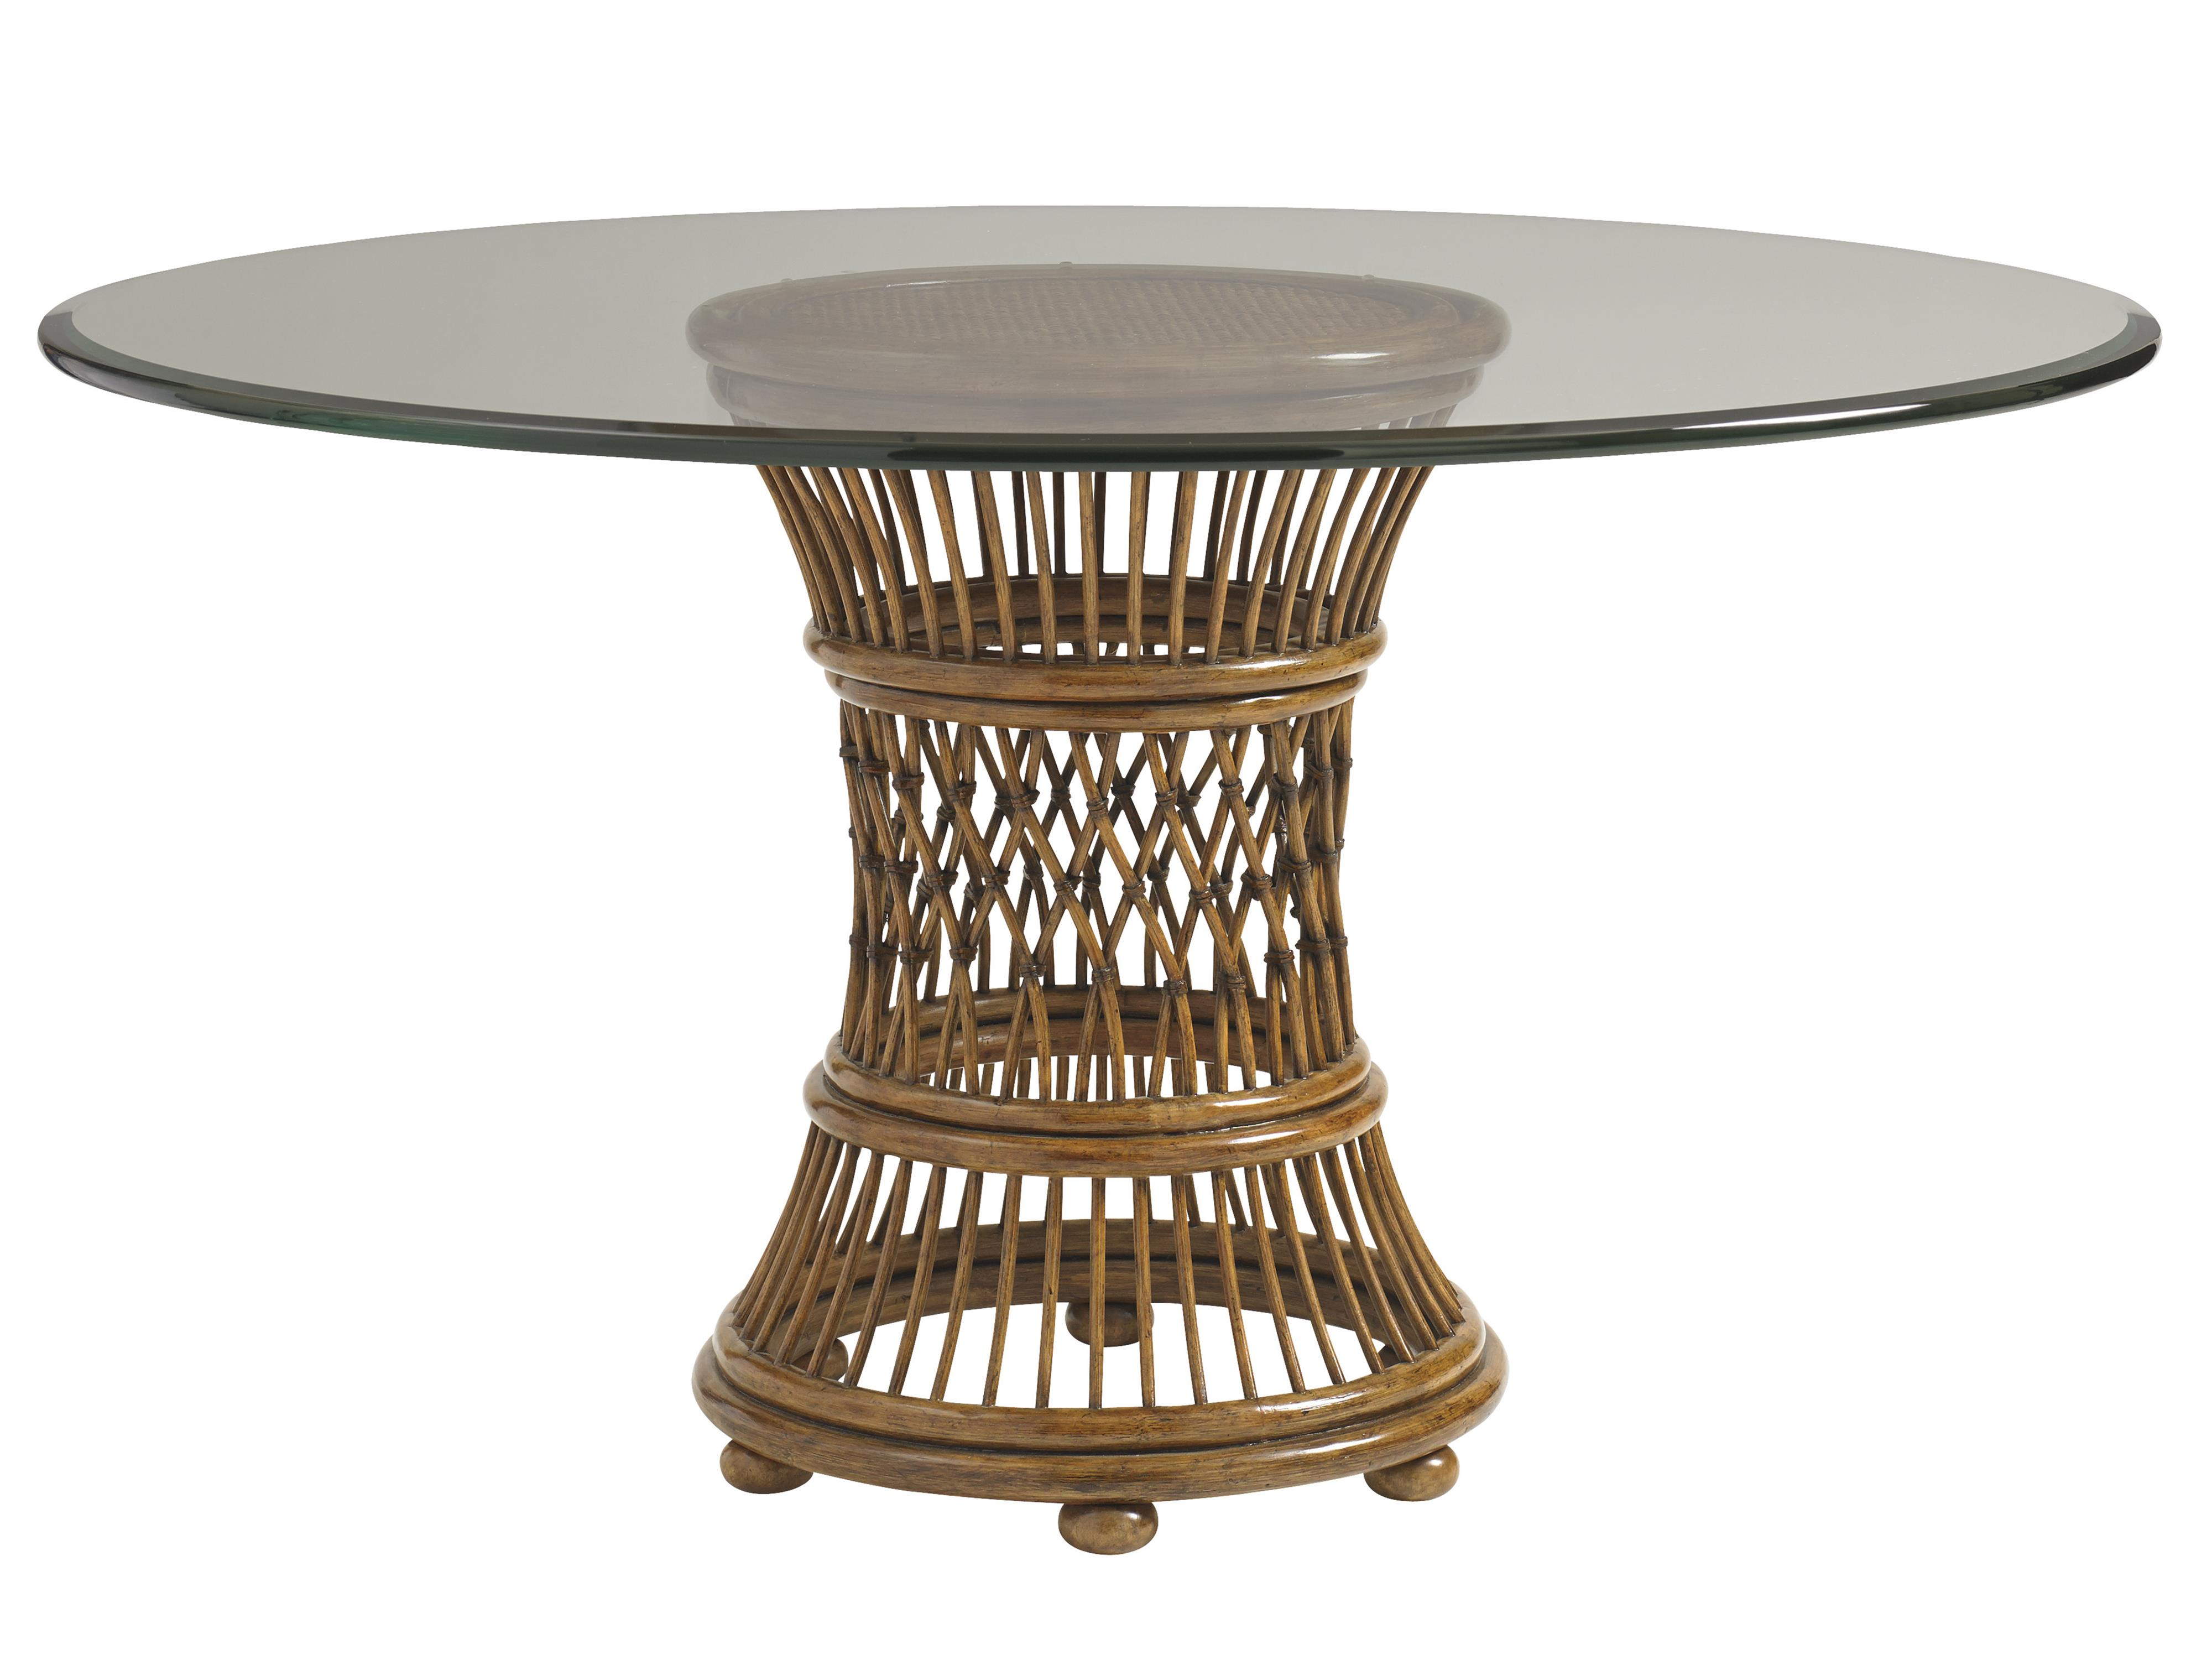 "Bali Hai 48"" Round Dining Room Table by Tommy Bahama Home at Baer's Furniture"